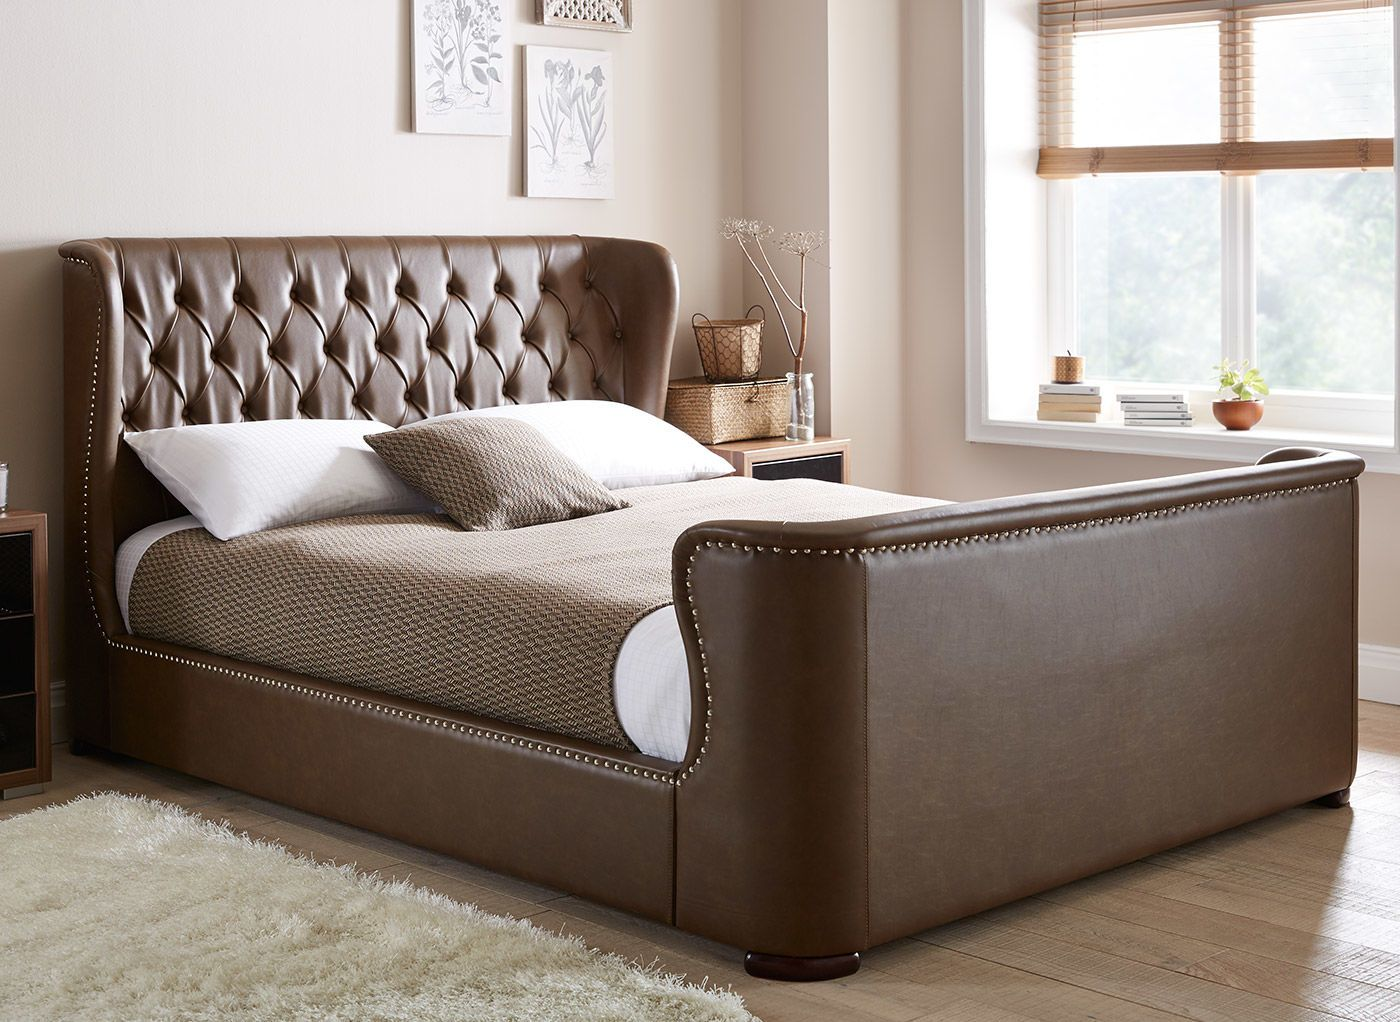 Leather Bed Frame Brussels Upholstered Bed Frame New Home Leather Bed Frame